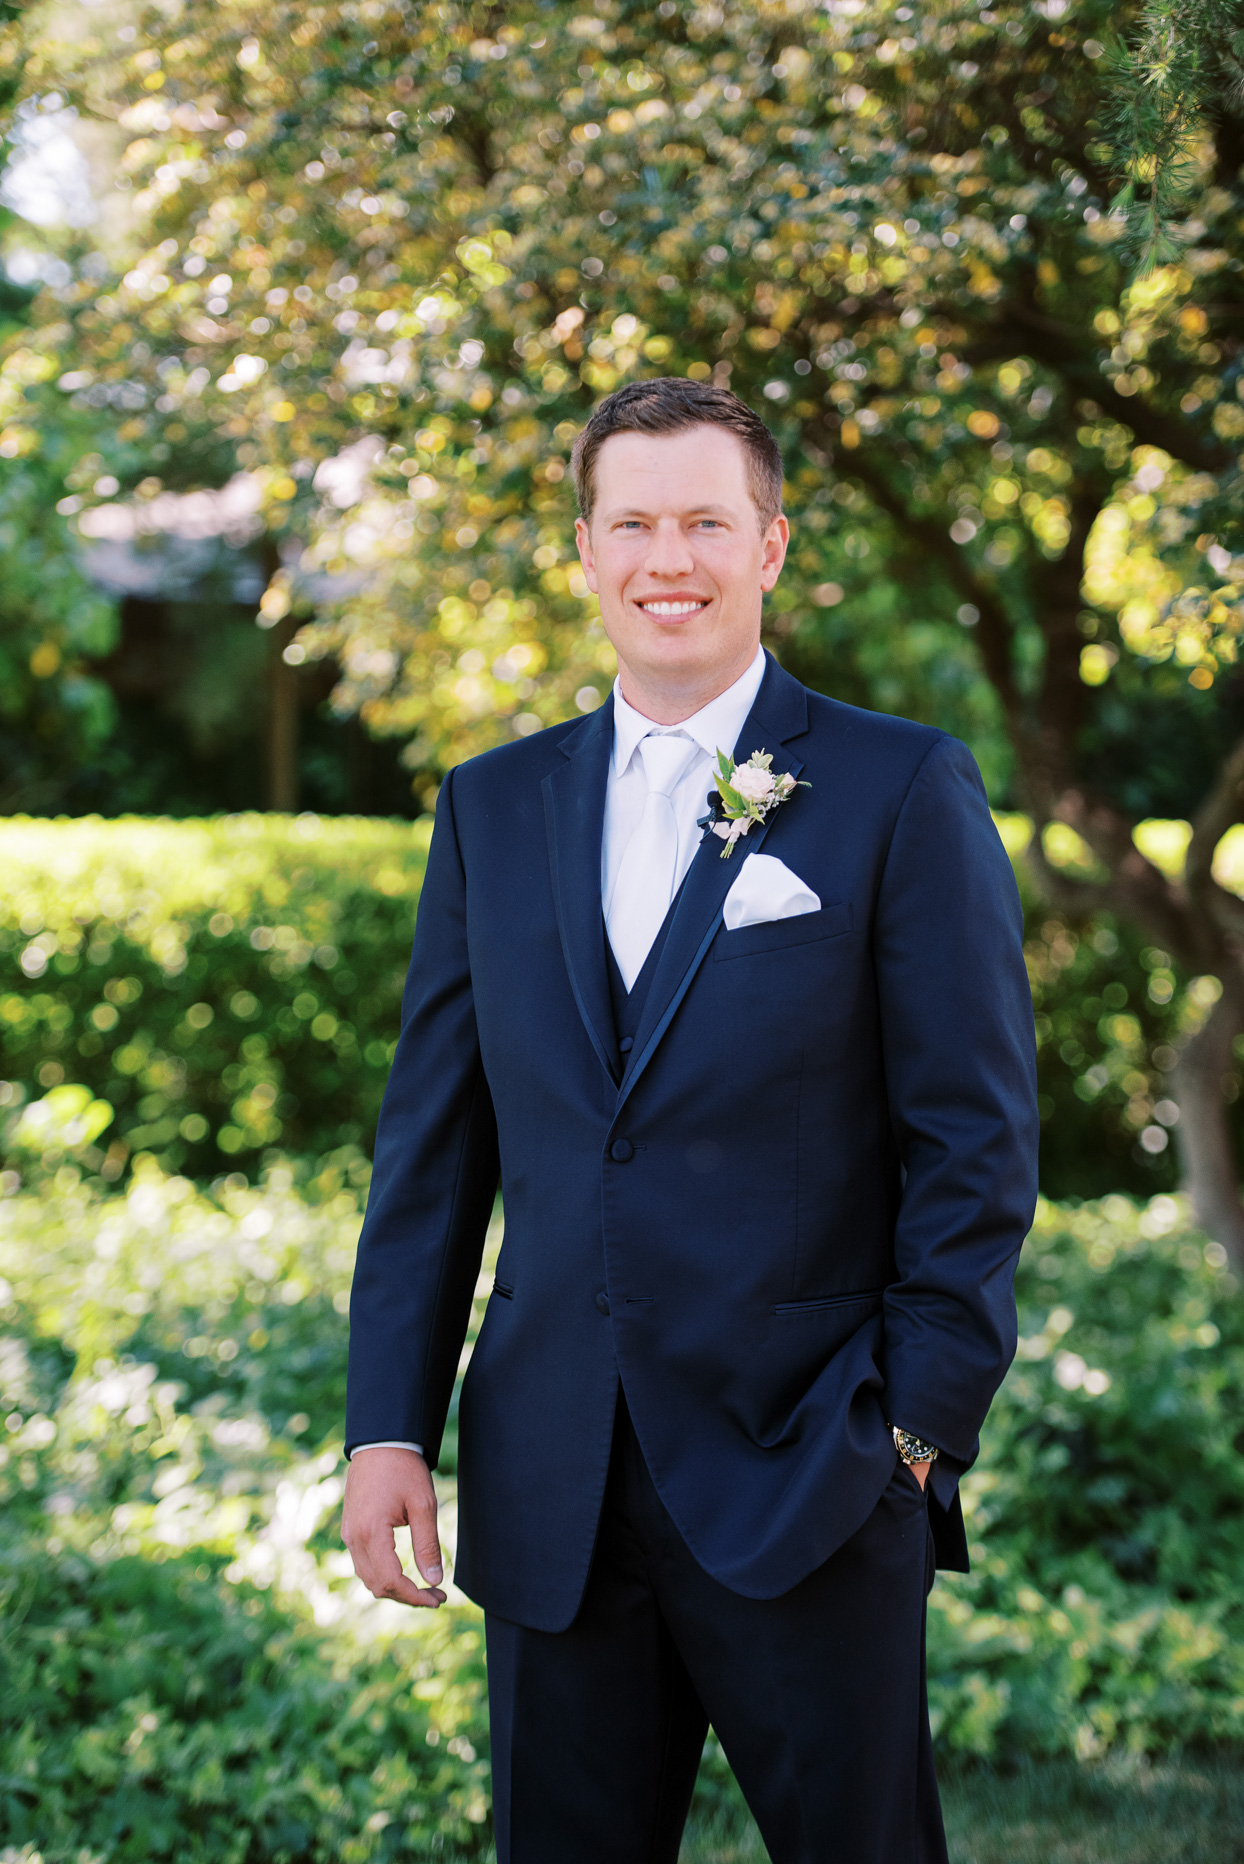 groom in navy suit with floral boutonniere